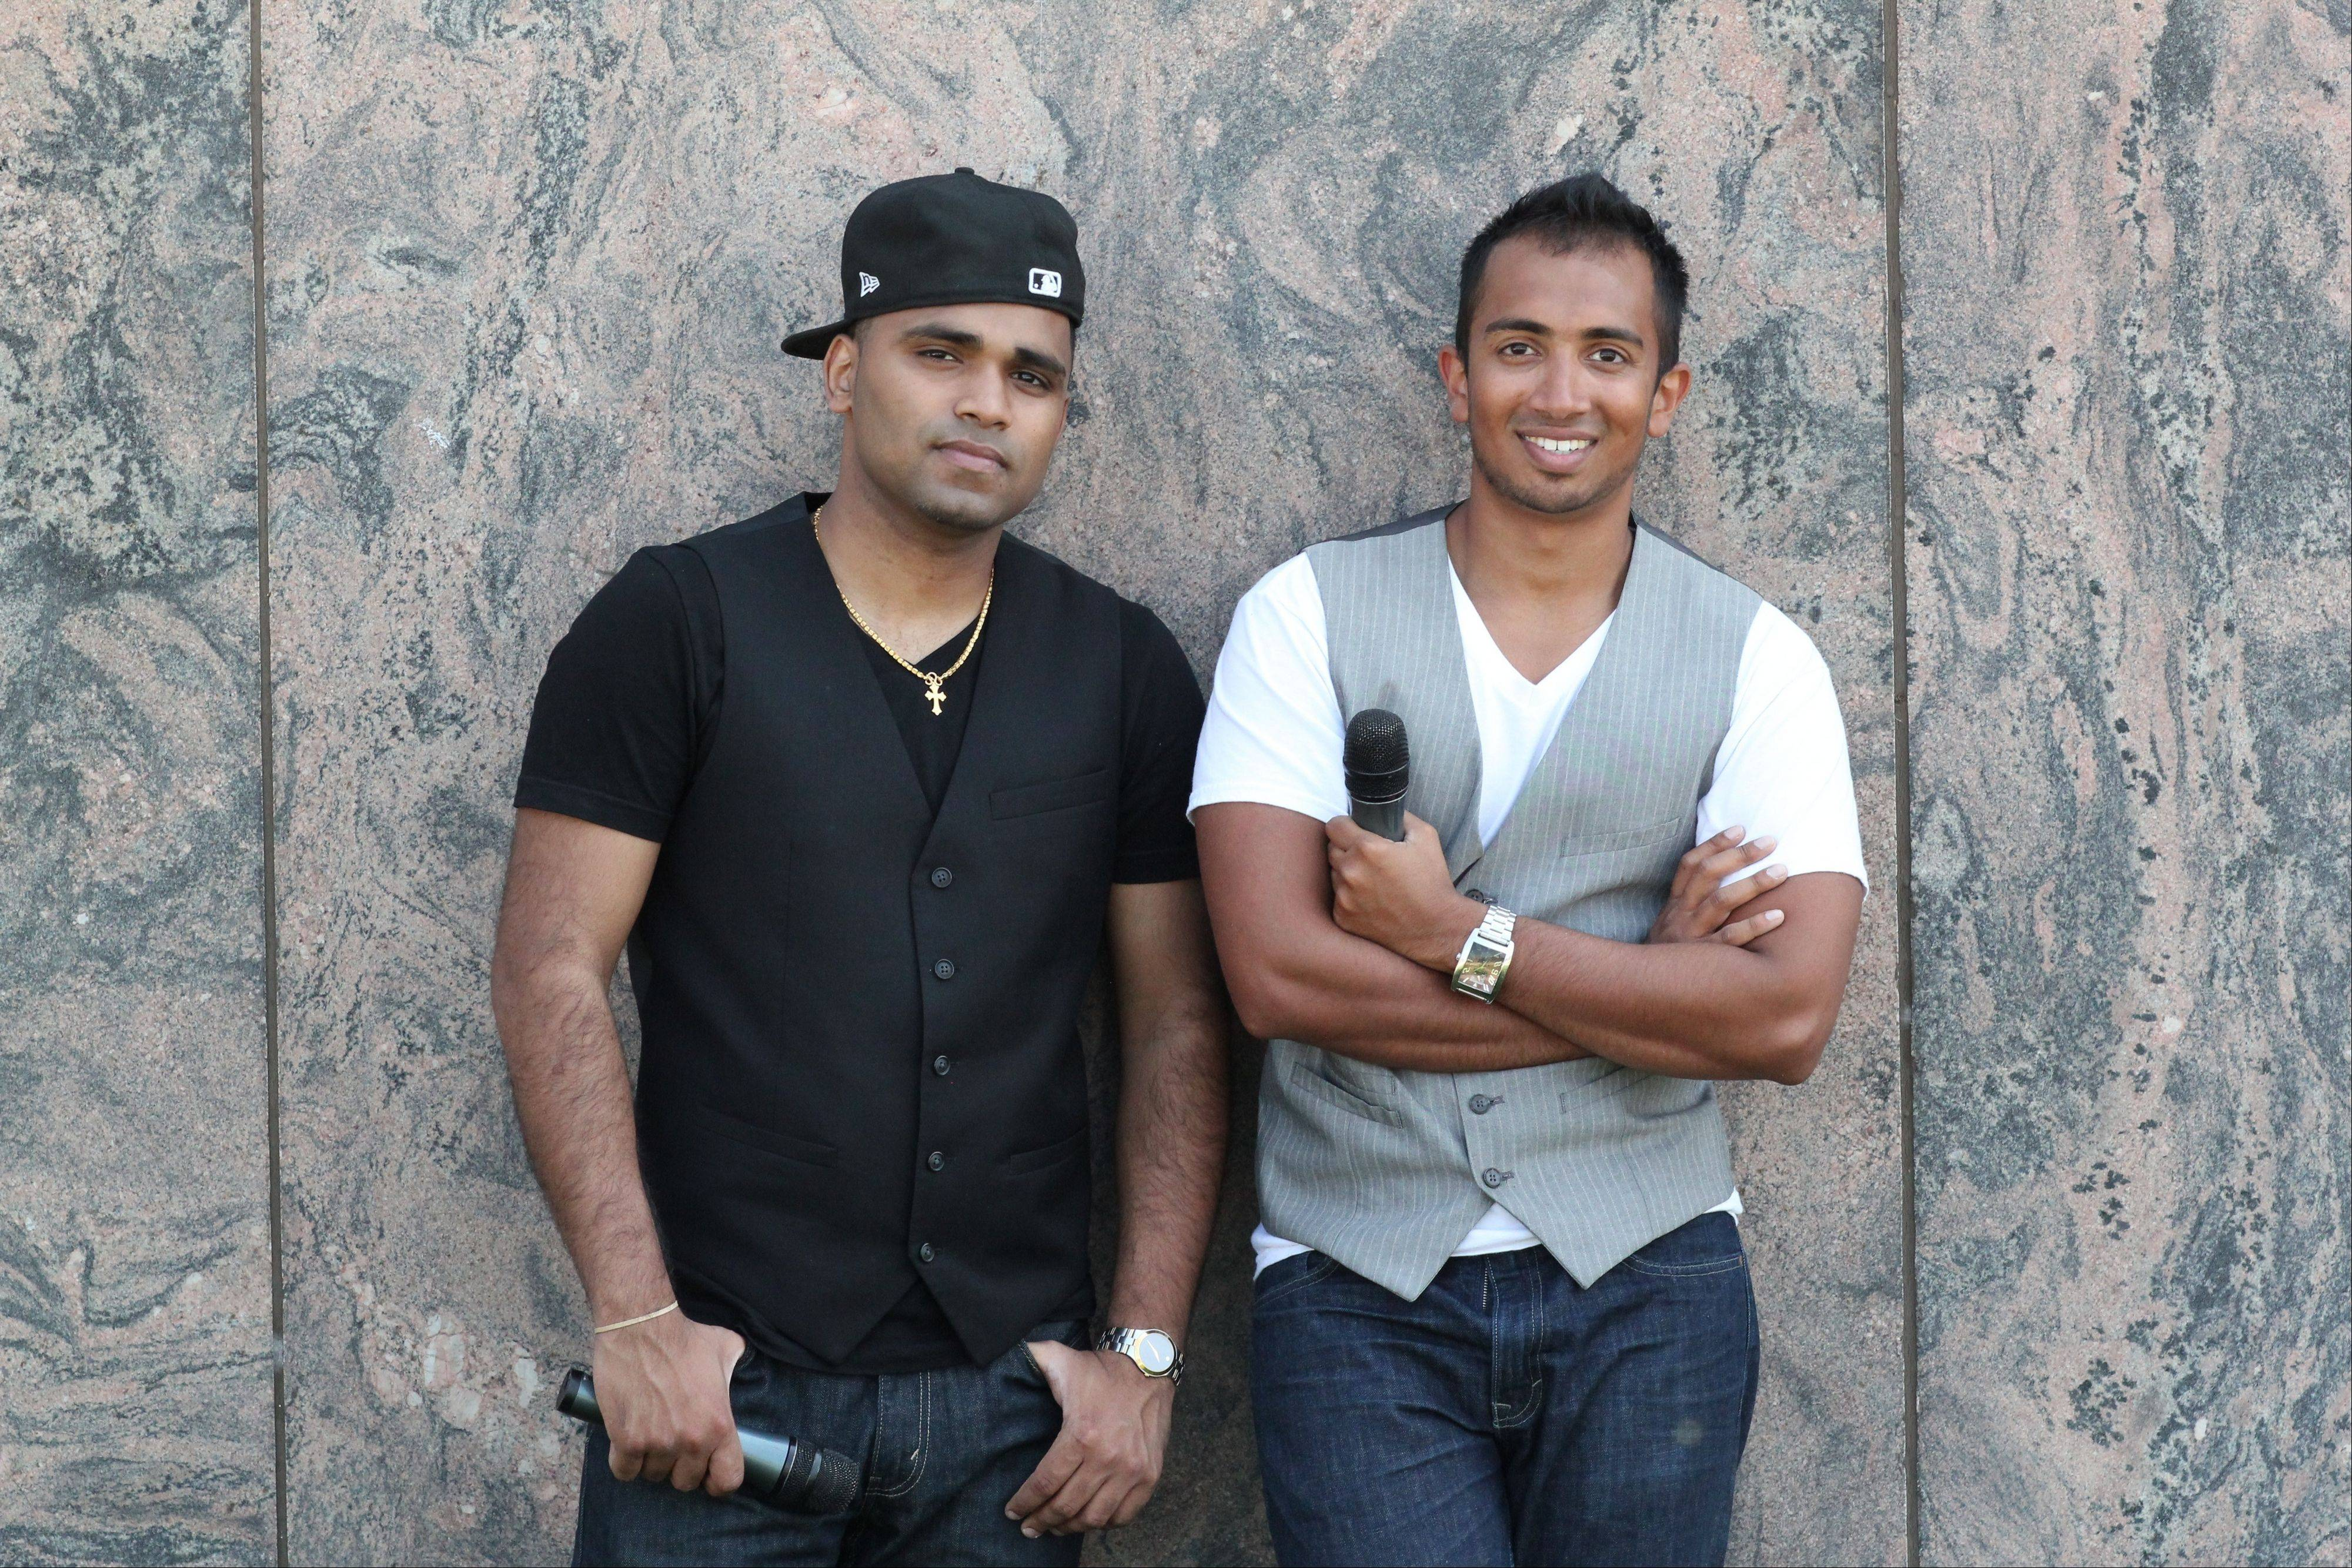 Sanu John and Shawn Kurian make up the beat-boxing duo iLLest Vocals. As the winners of the 2012 Suburban Chicago�s Got Talent competition, iLLest Vocals have a guaranteed audition time with NBC�s �America�s Got Talent.�